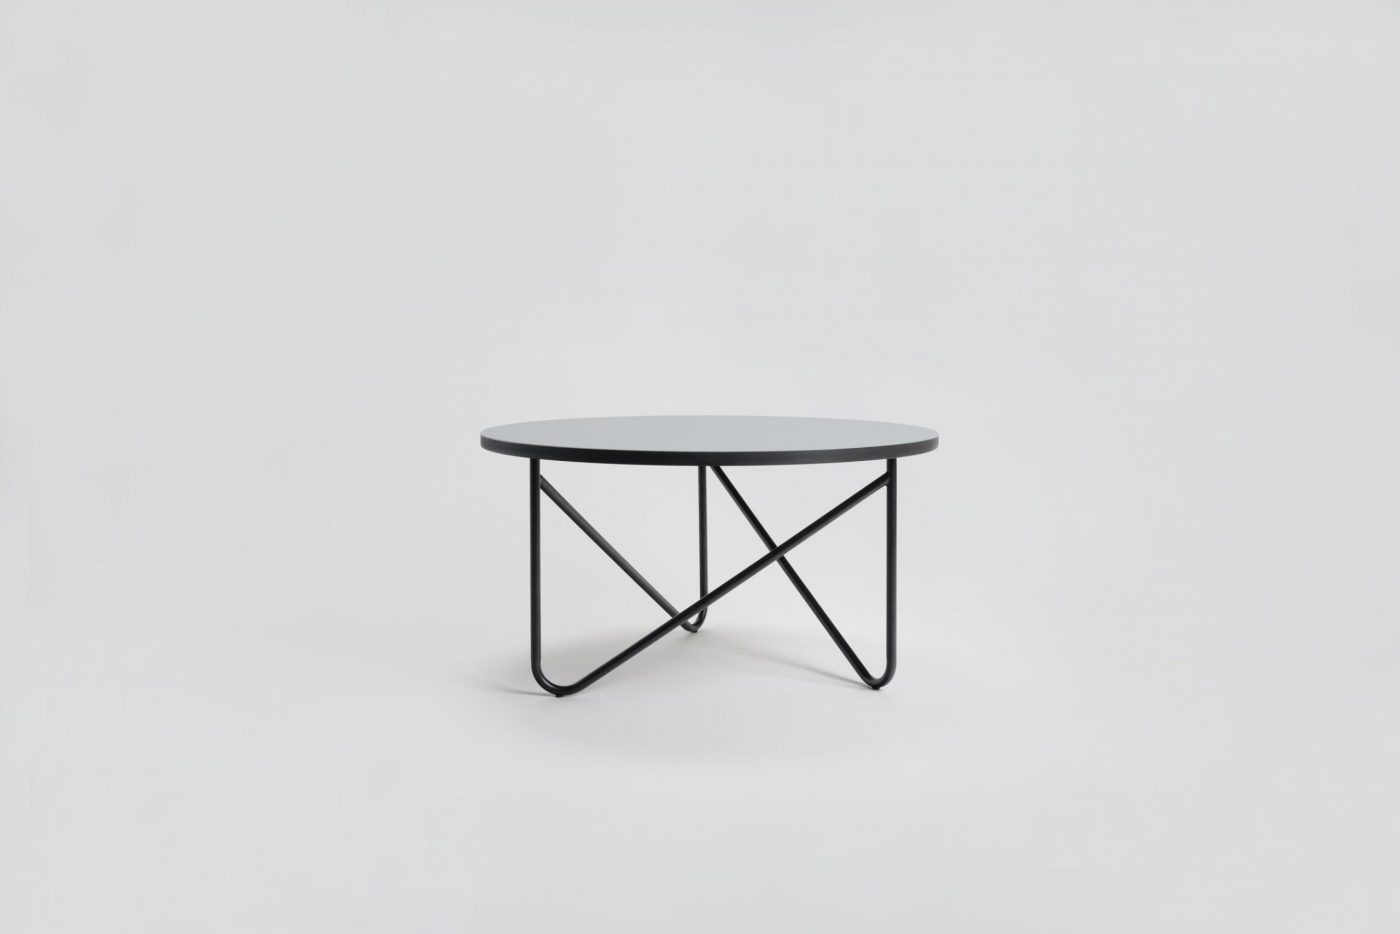 01 MYKILOS VVV TABLE BLACK GREEN ROSE  GRAY LINOLEUM scaled